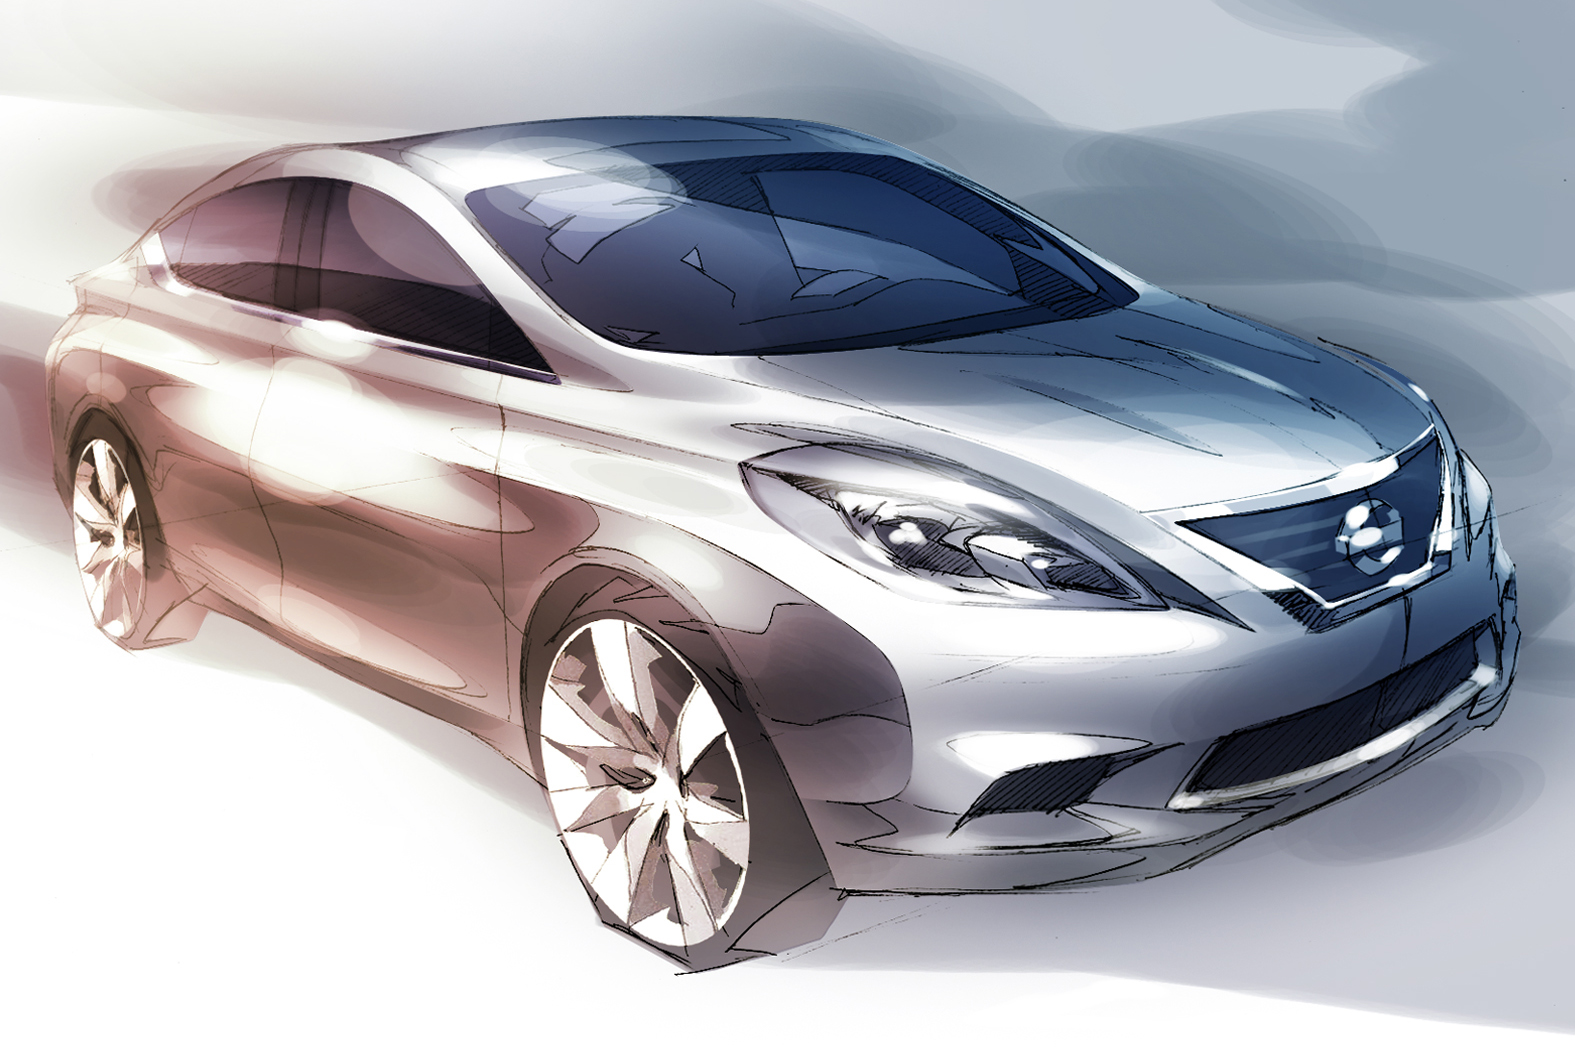 Next Generation Nissan Versa sketch